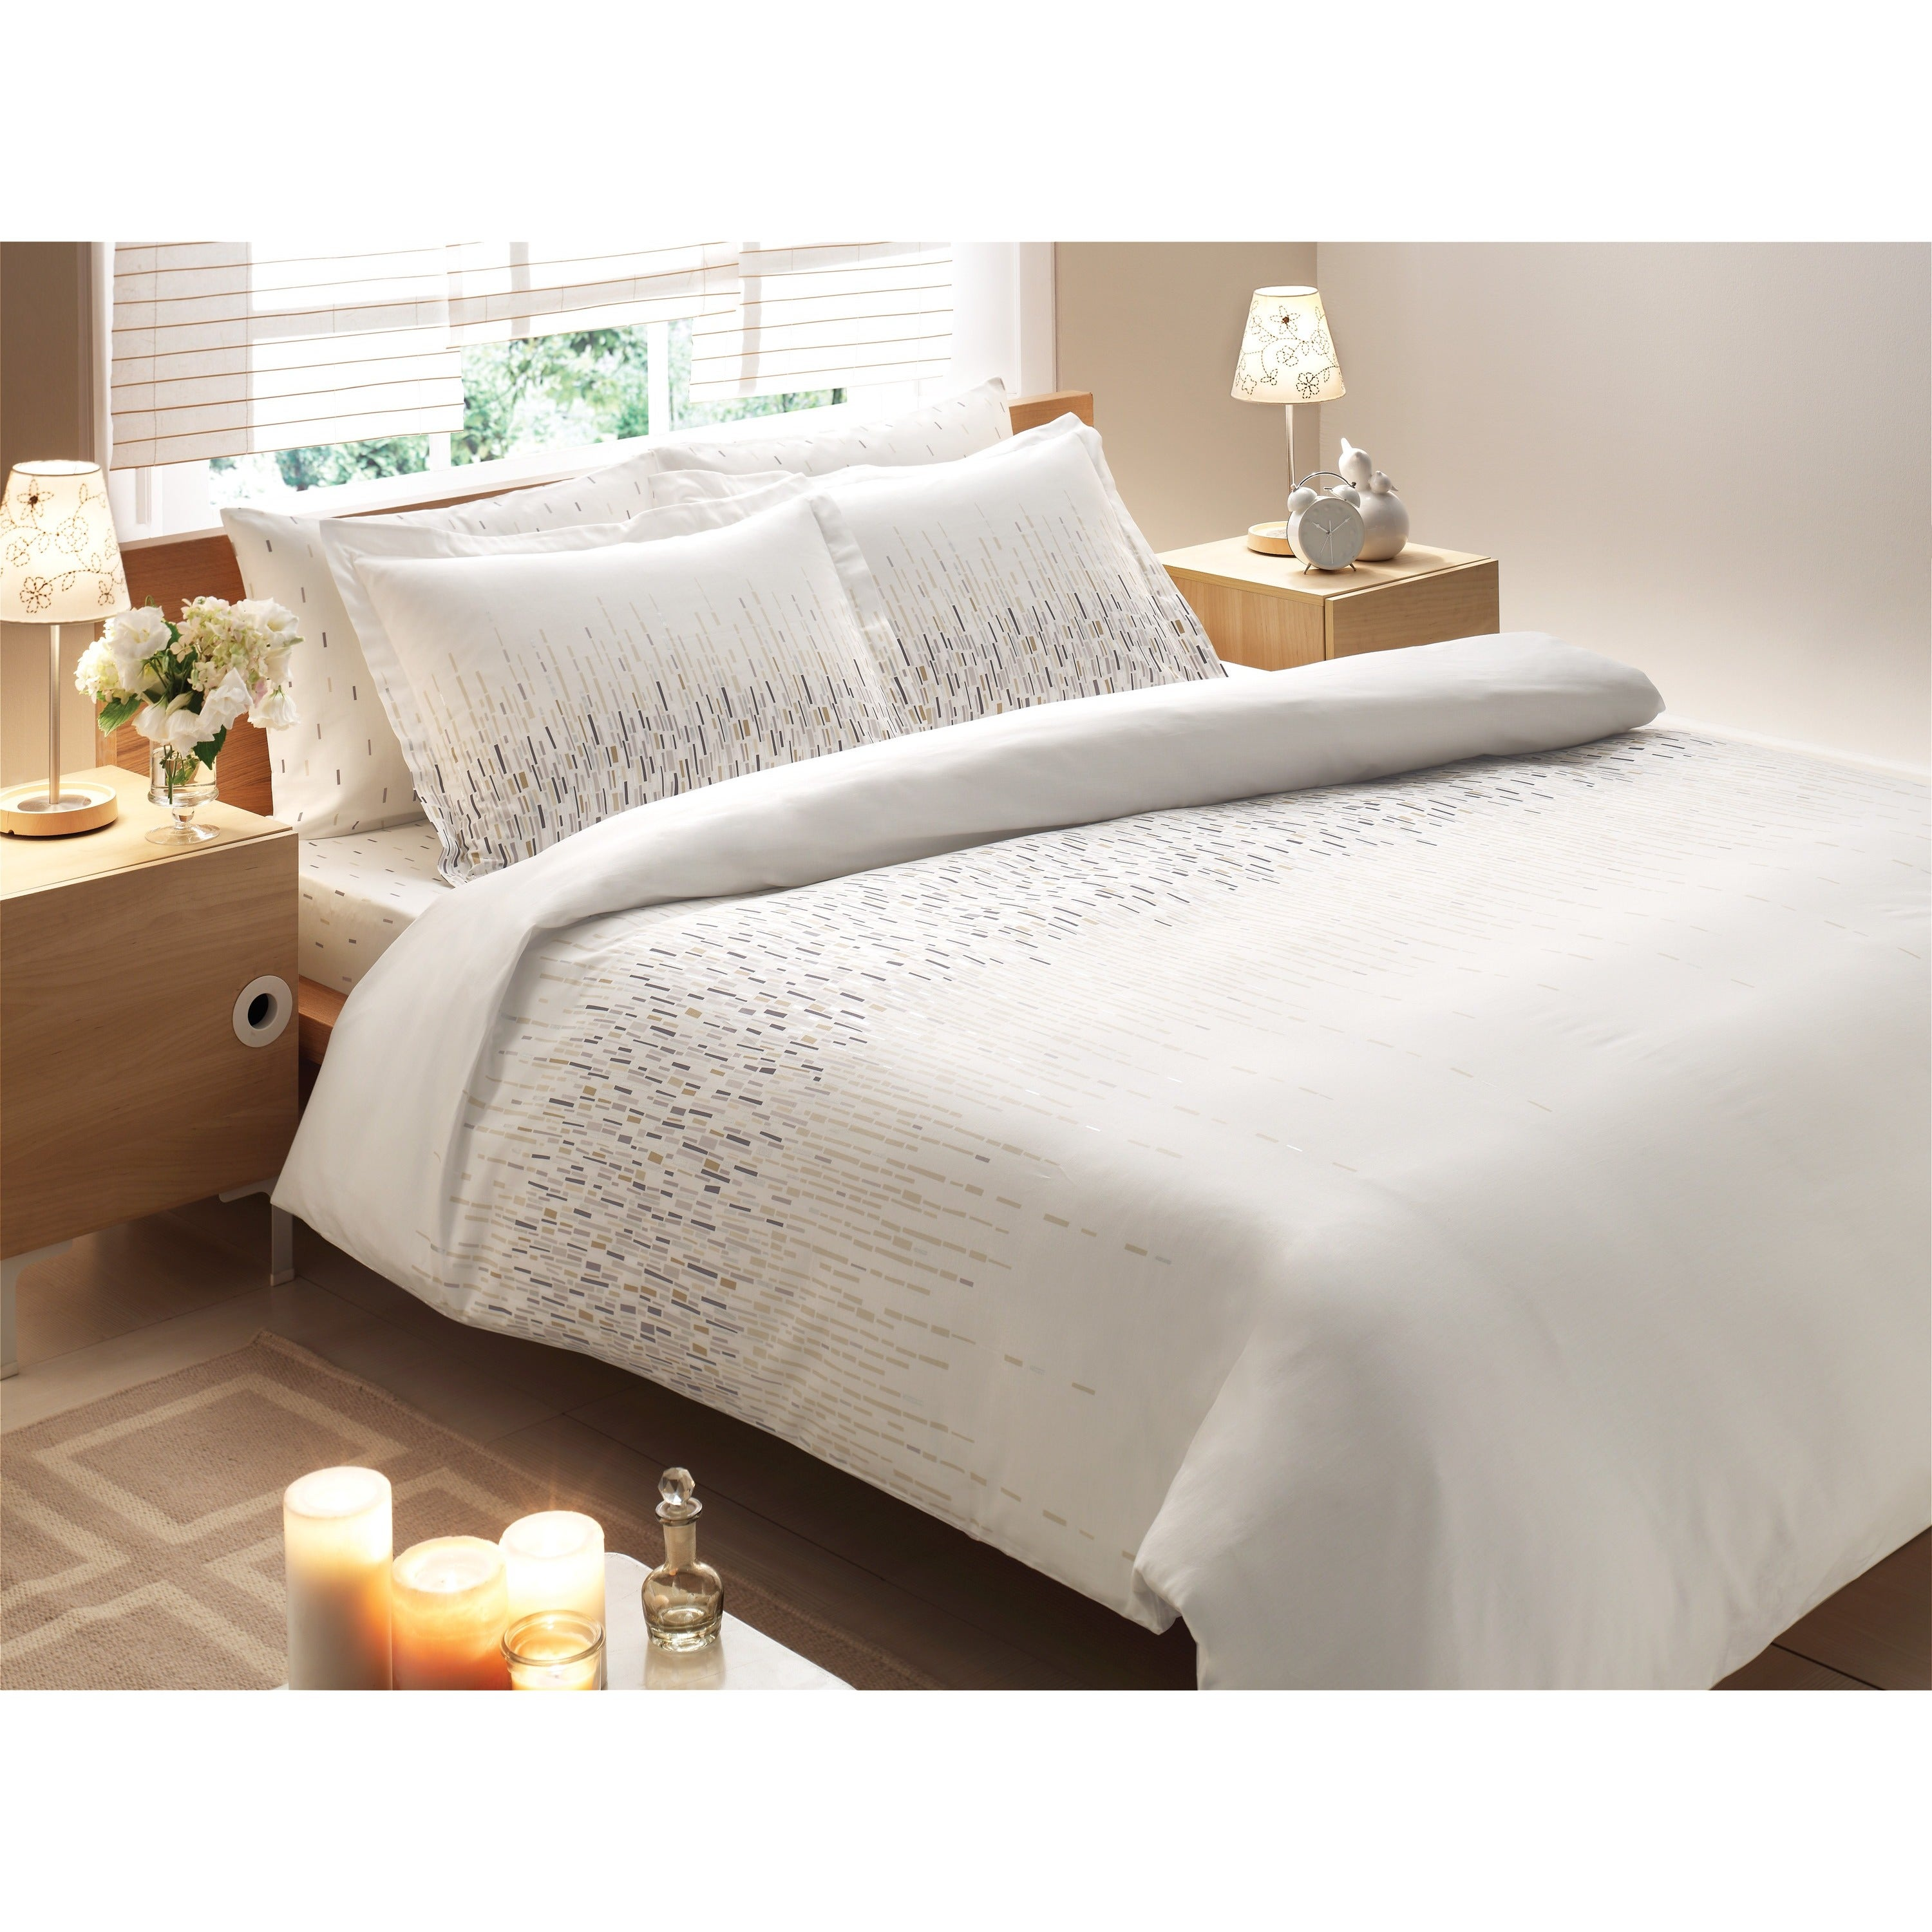 products more eggshell count bsm sheets set white bamboo split king watermark heartland thread bed sheet close bfed